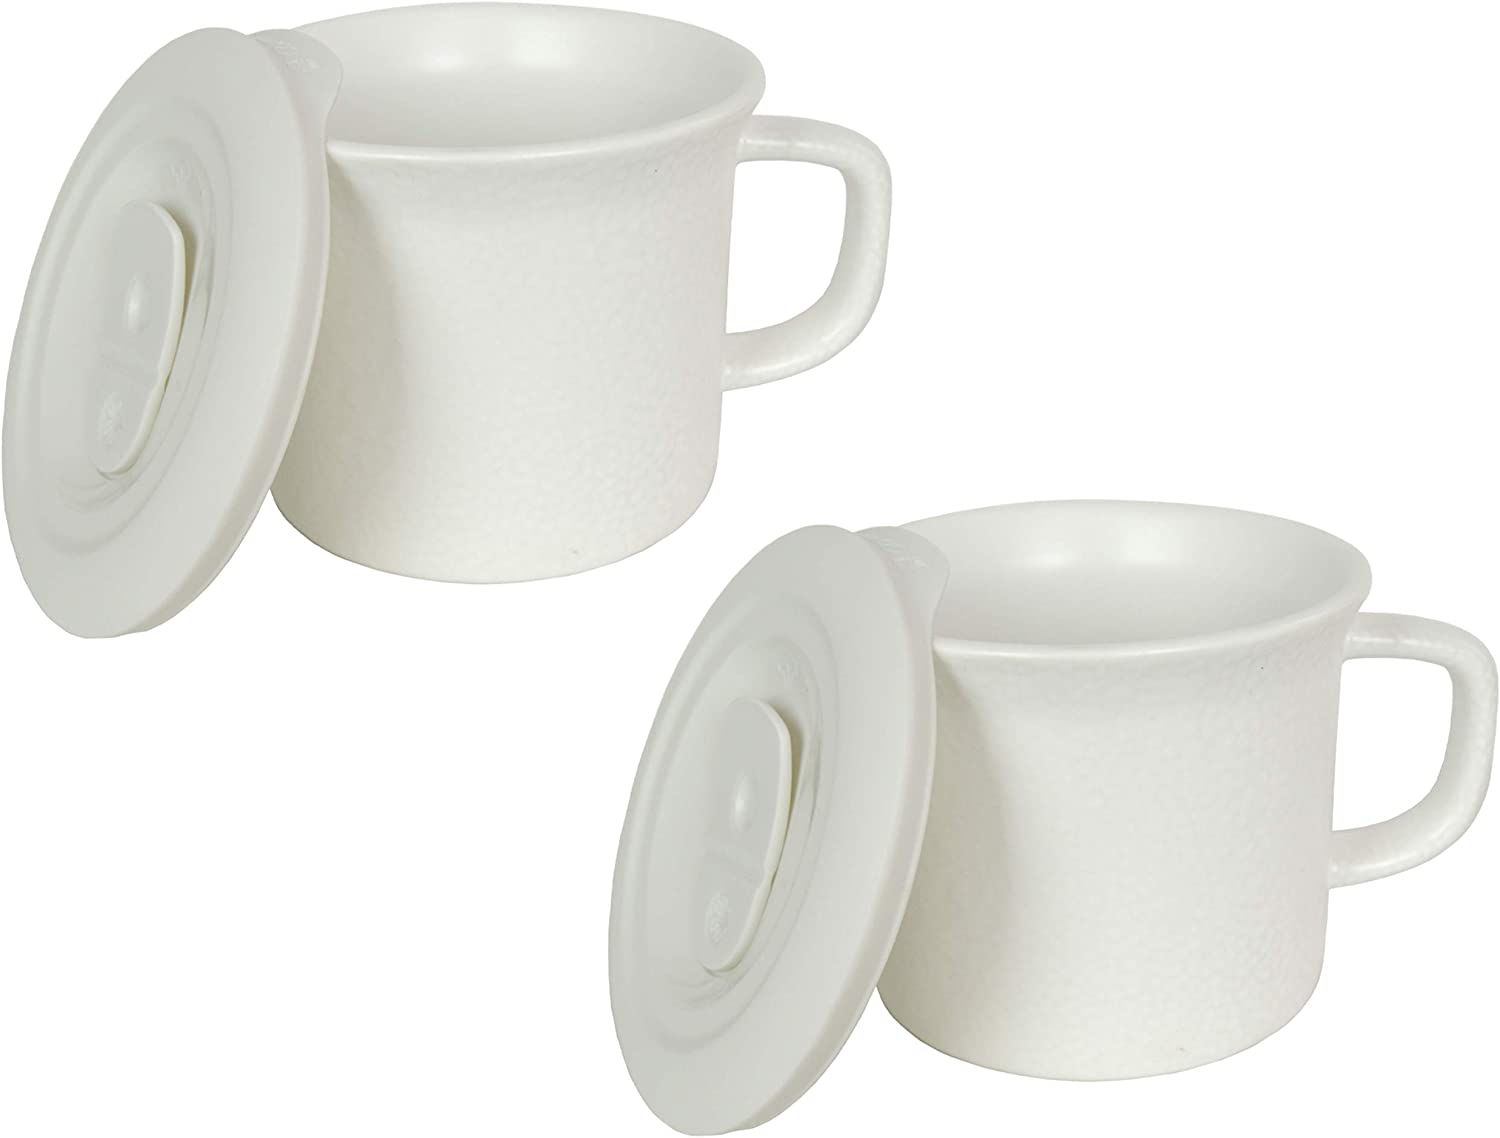 Corningware 20 Ounce Hammered White Meal Mug With Vented Lid - 2 Pack